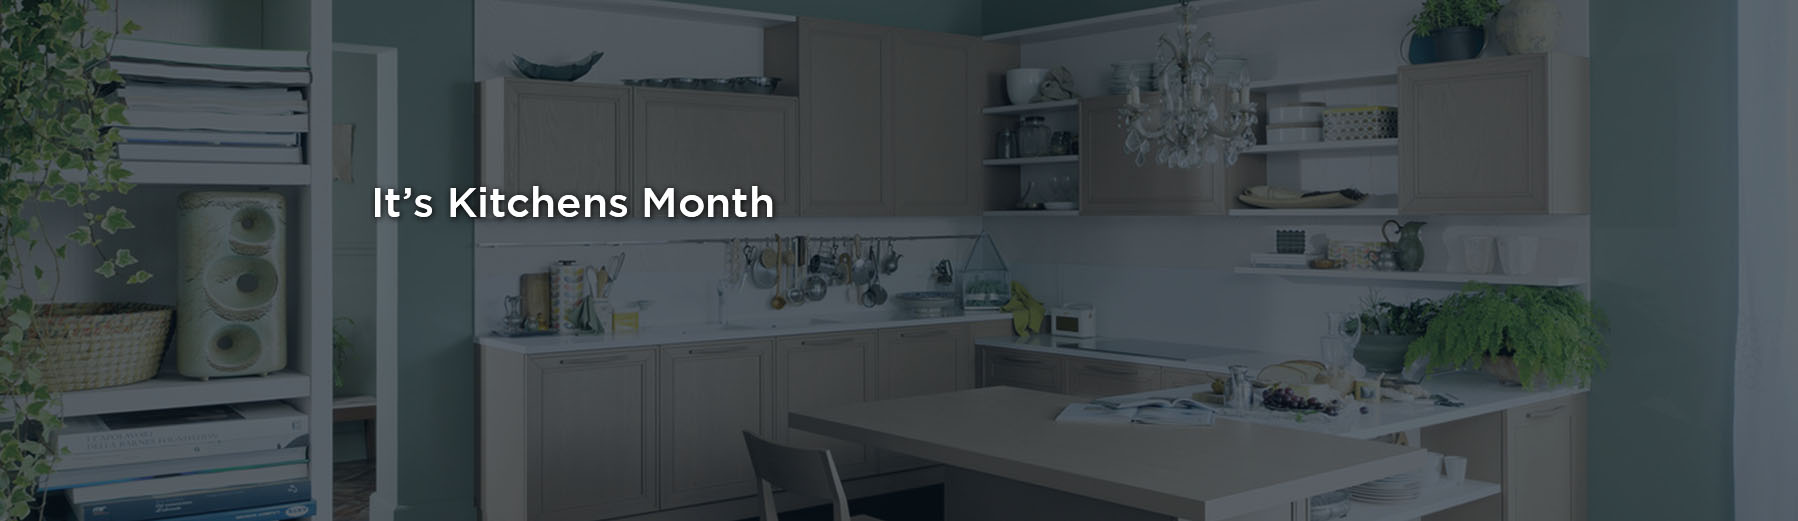 July is Kitchens Month at Fino